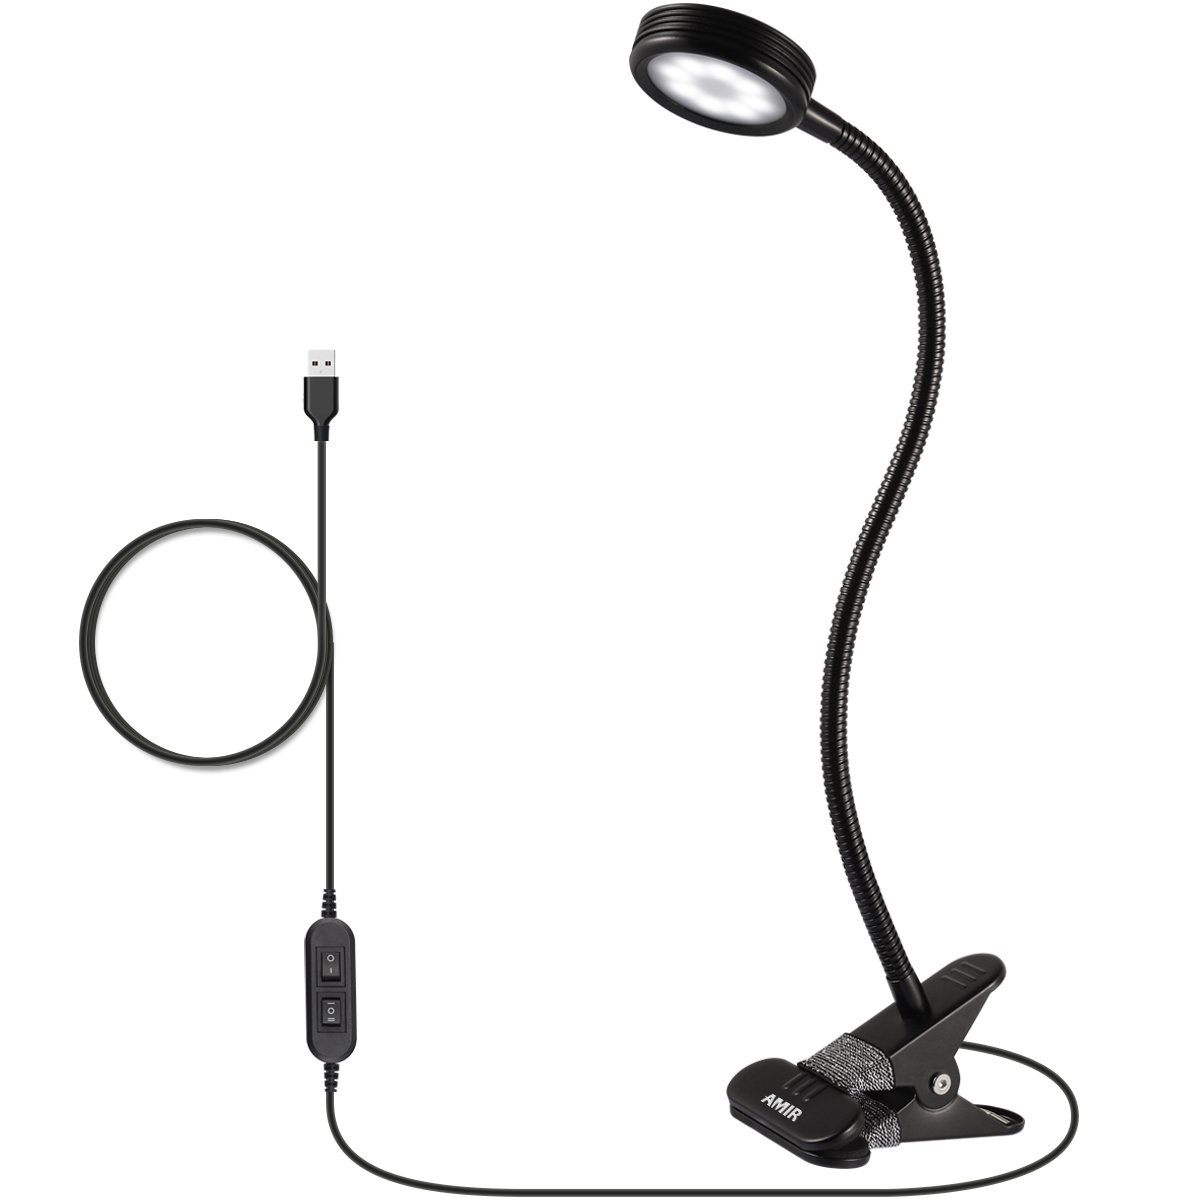 AMIR Clip on Book Light, Eye Care Reading Light, 2-Level Dimmer & 2-Mode Light Color Switchable with Flexible Arm, for Headboard, Desk, Bedstead (Need Plugged in to Work, AC Adapter Not Included)